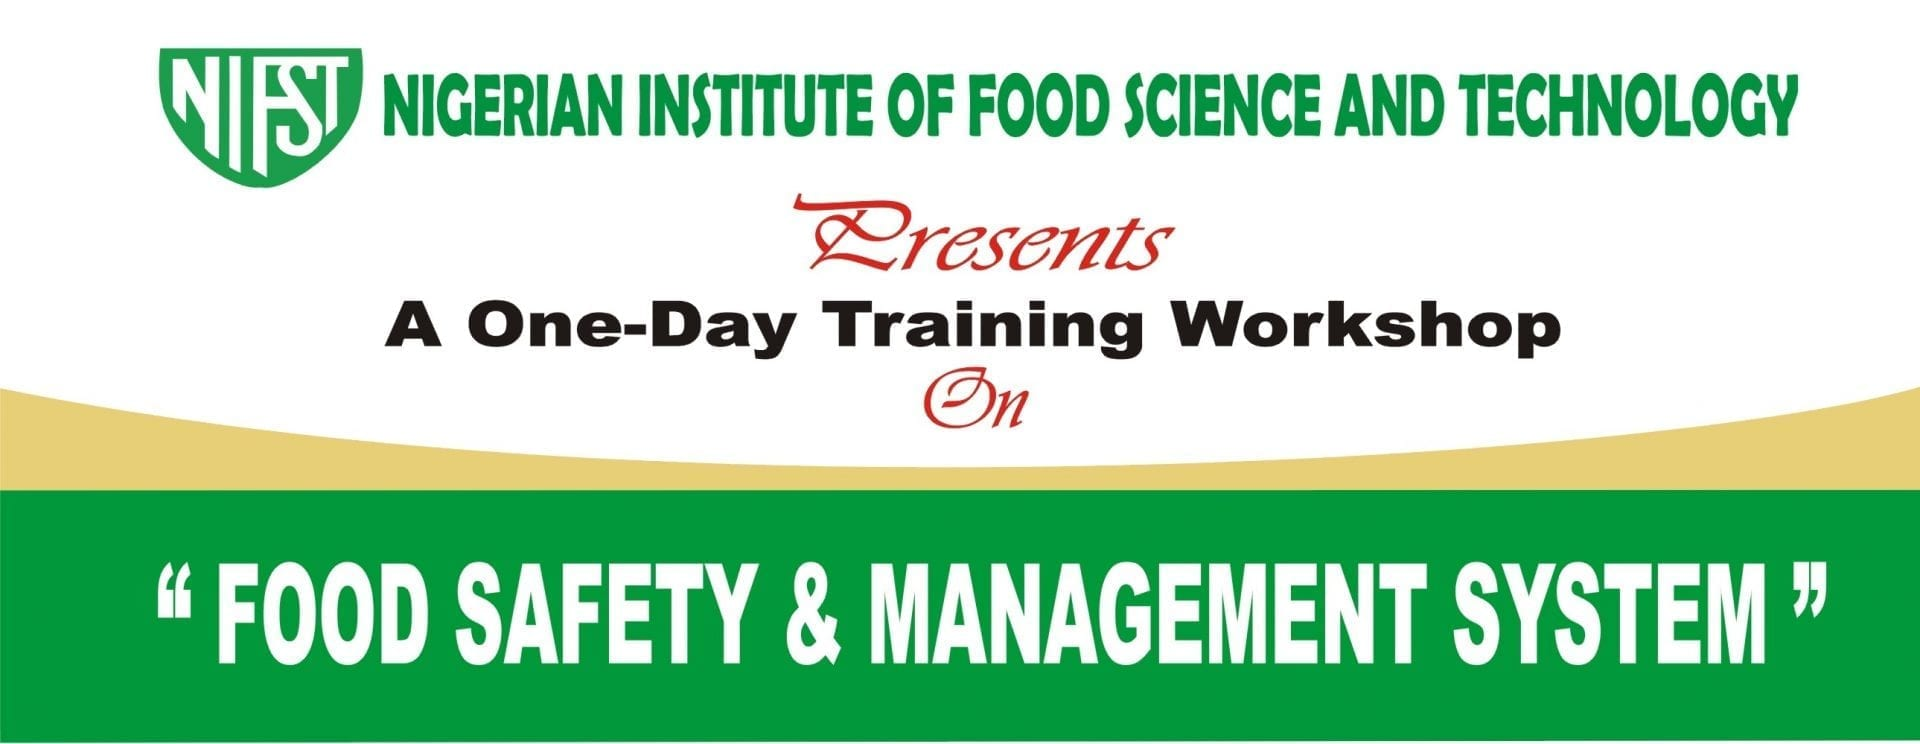 food safety management Iso 22000 extends the successful management system approach of the iso 9001:2000 quality management system standard which is widely implemented in all sectors but does not itself specifically address food safety.